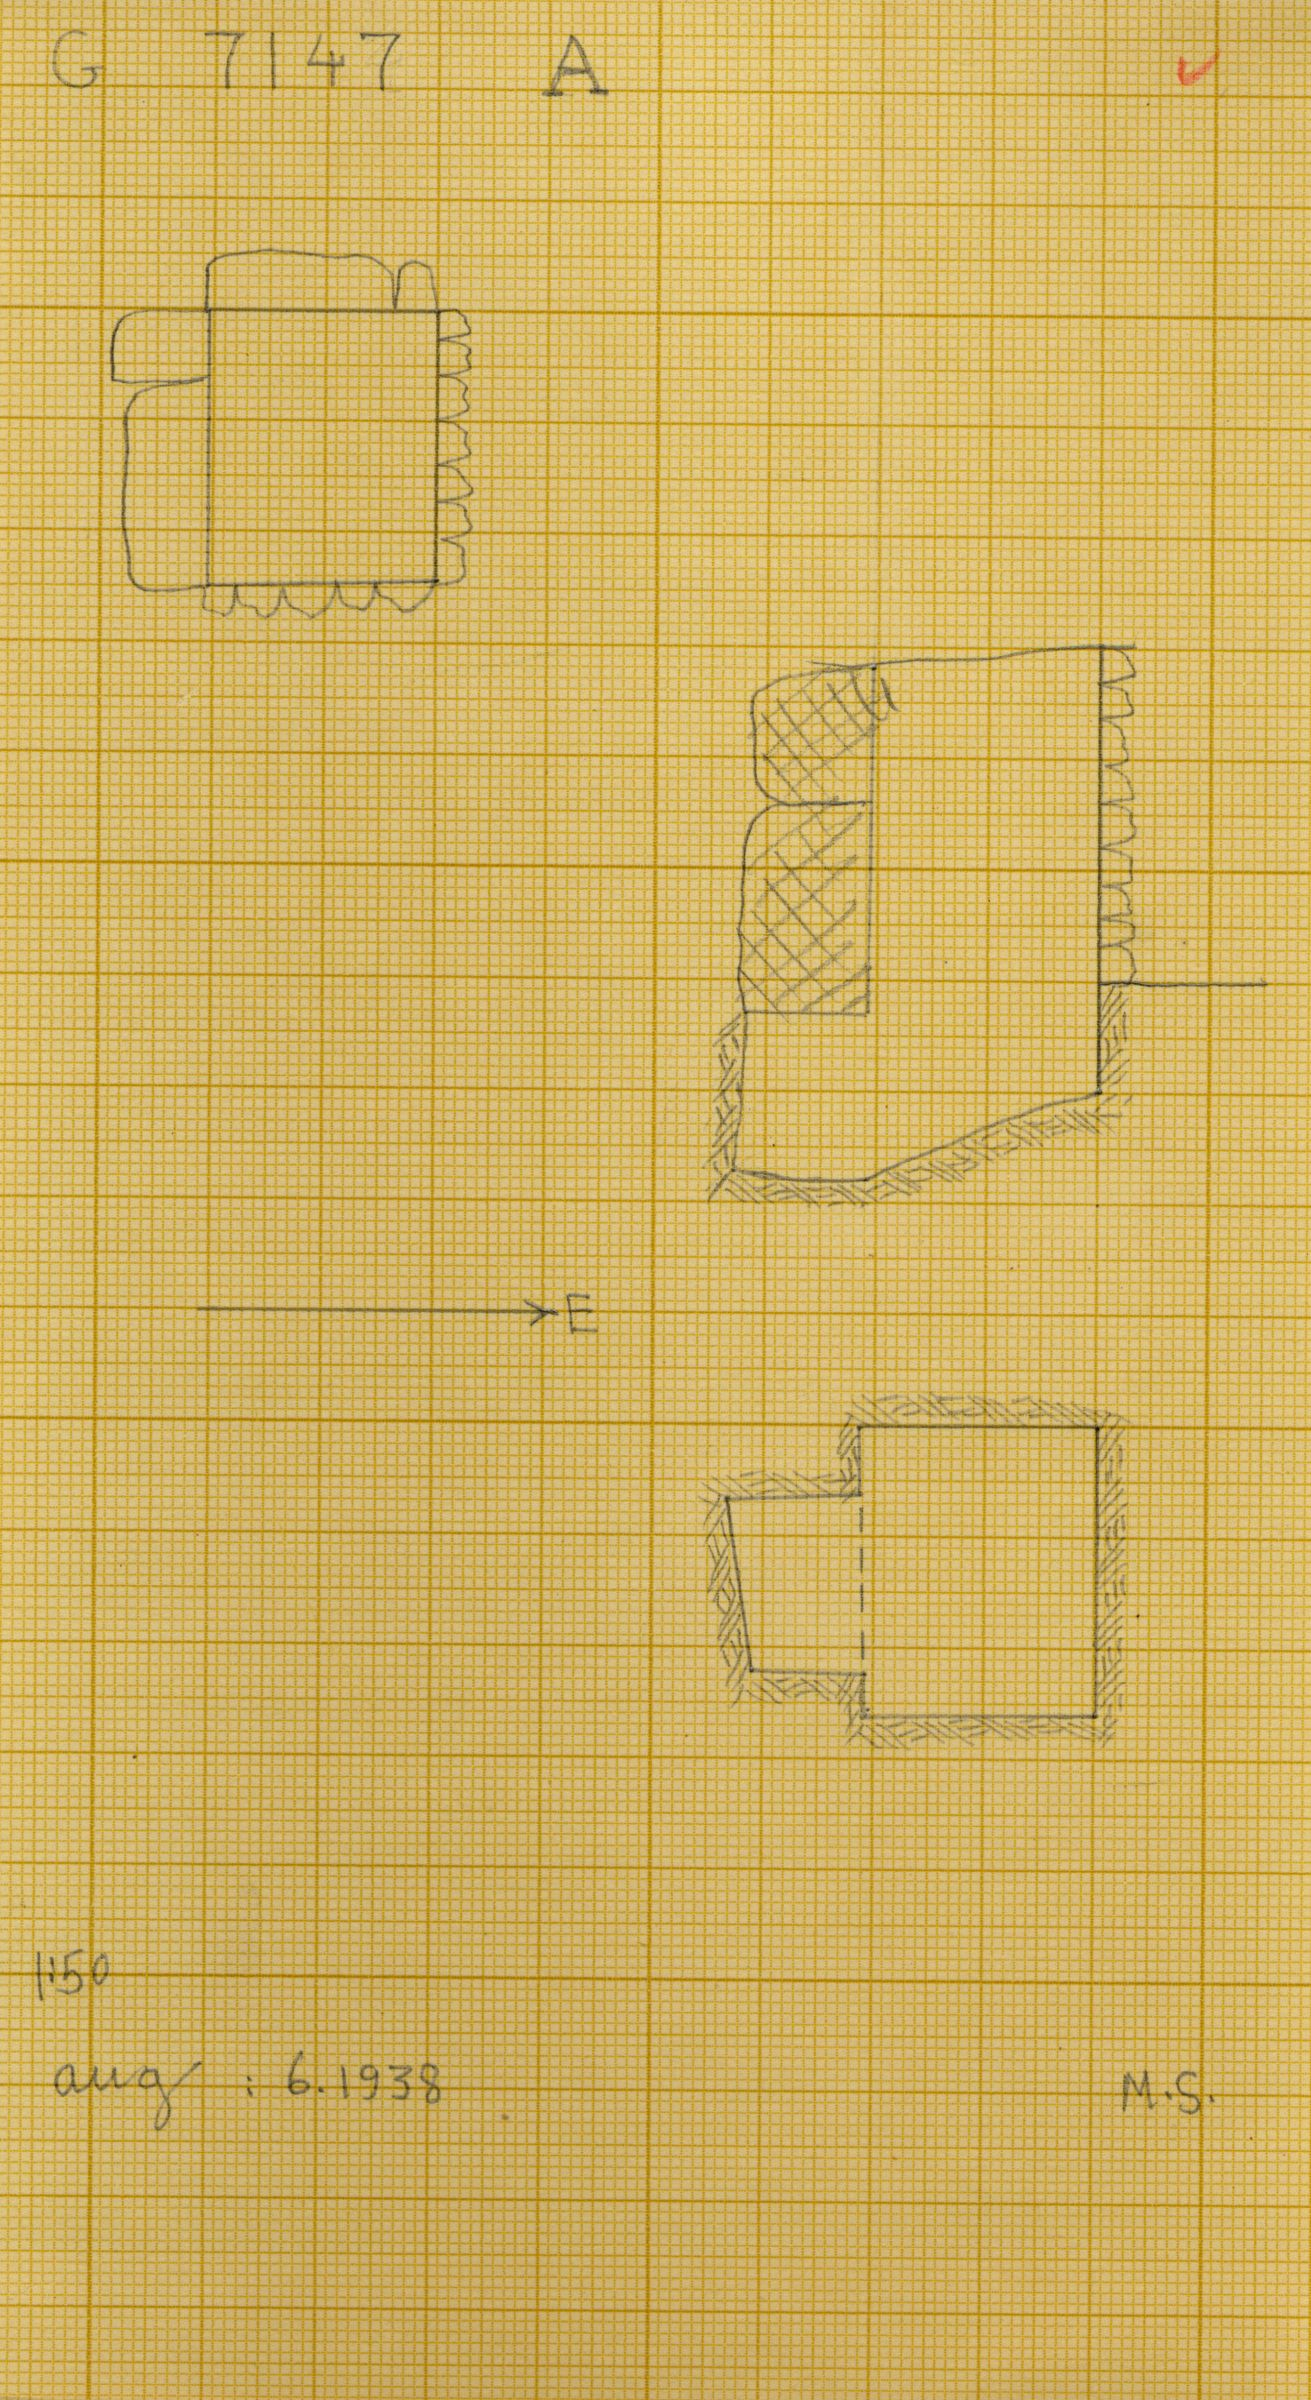 Maps and plans: G 7145+7147: G 7147, Shaft A